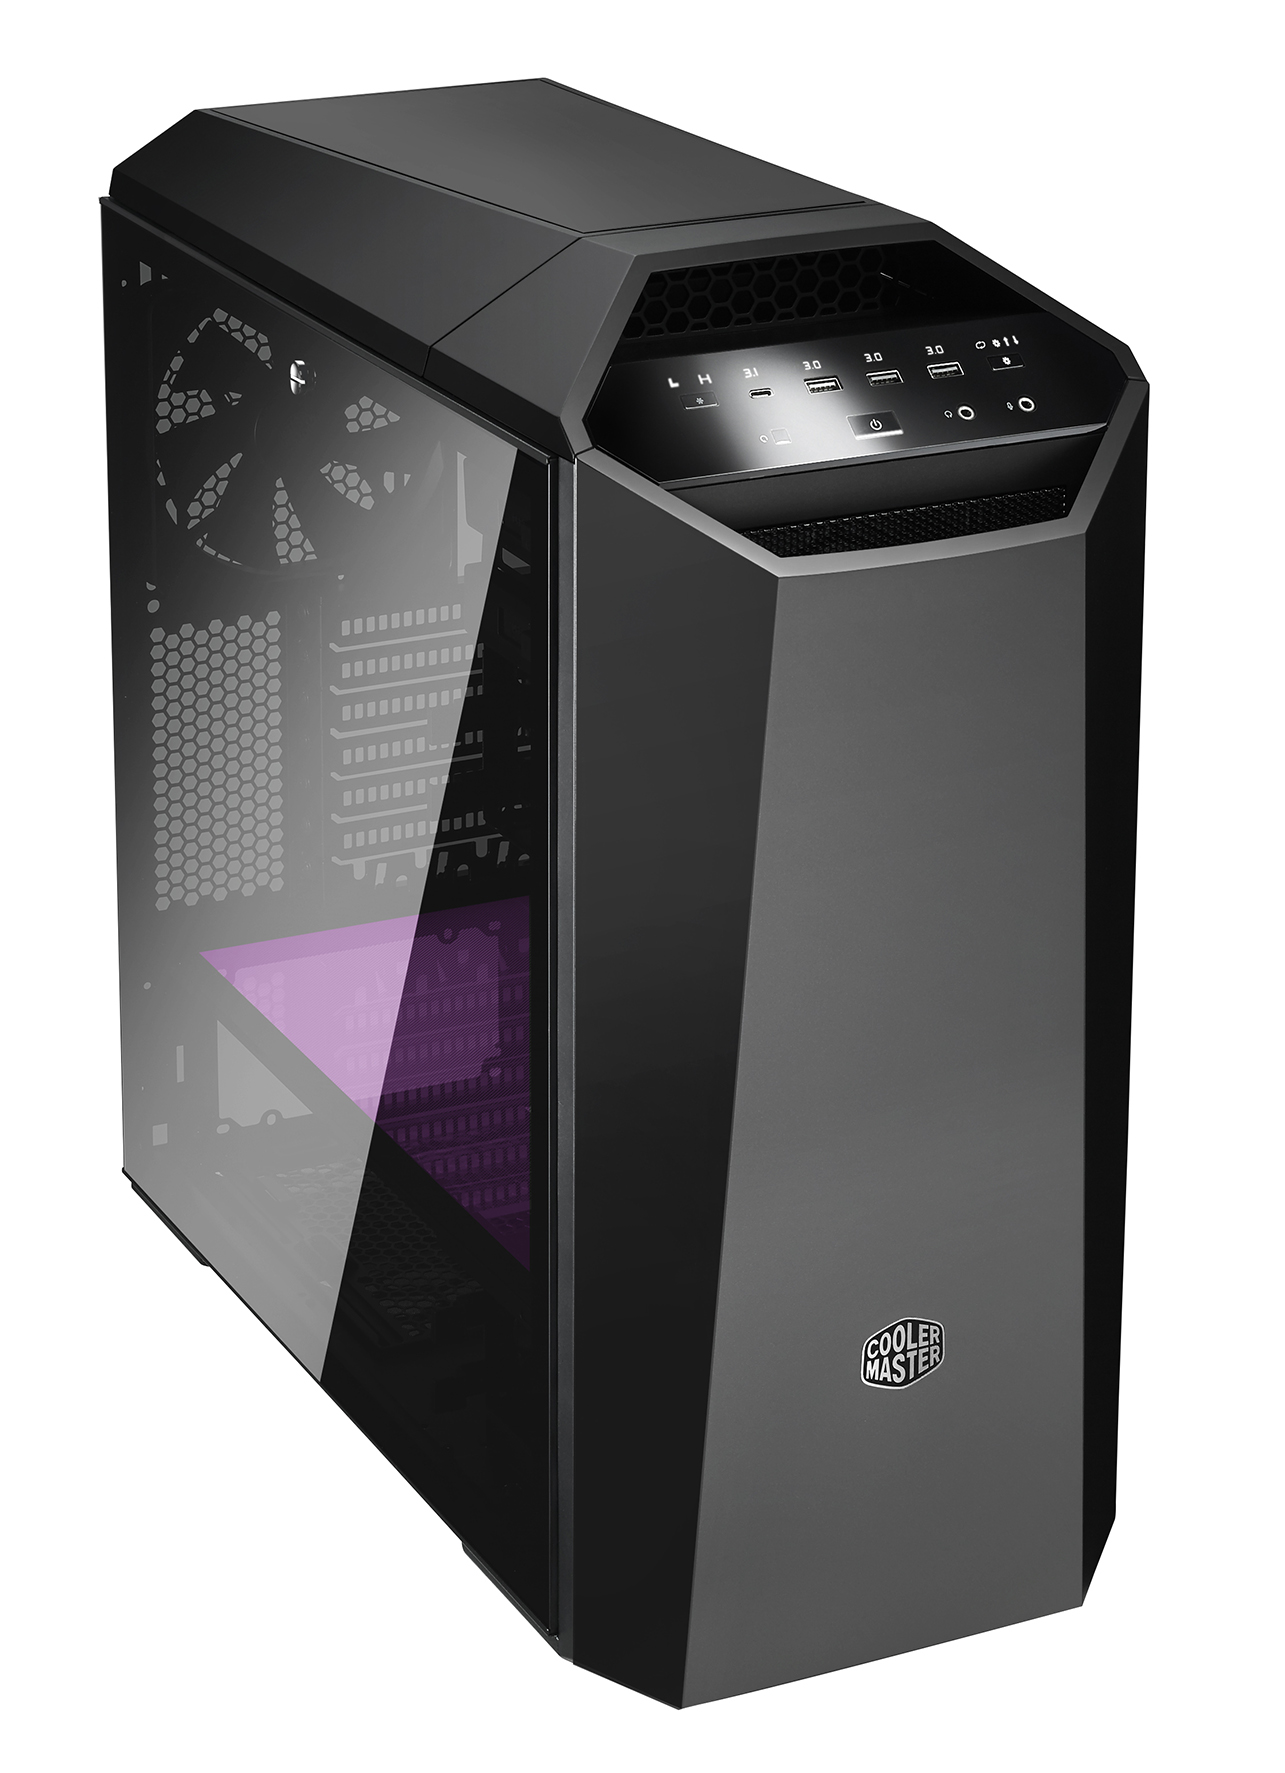 Coolermaster At Ces 2018 Refreshed Mastercase And